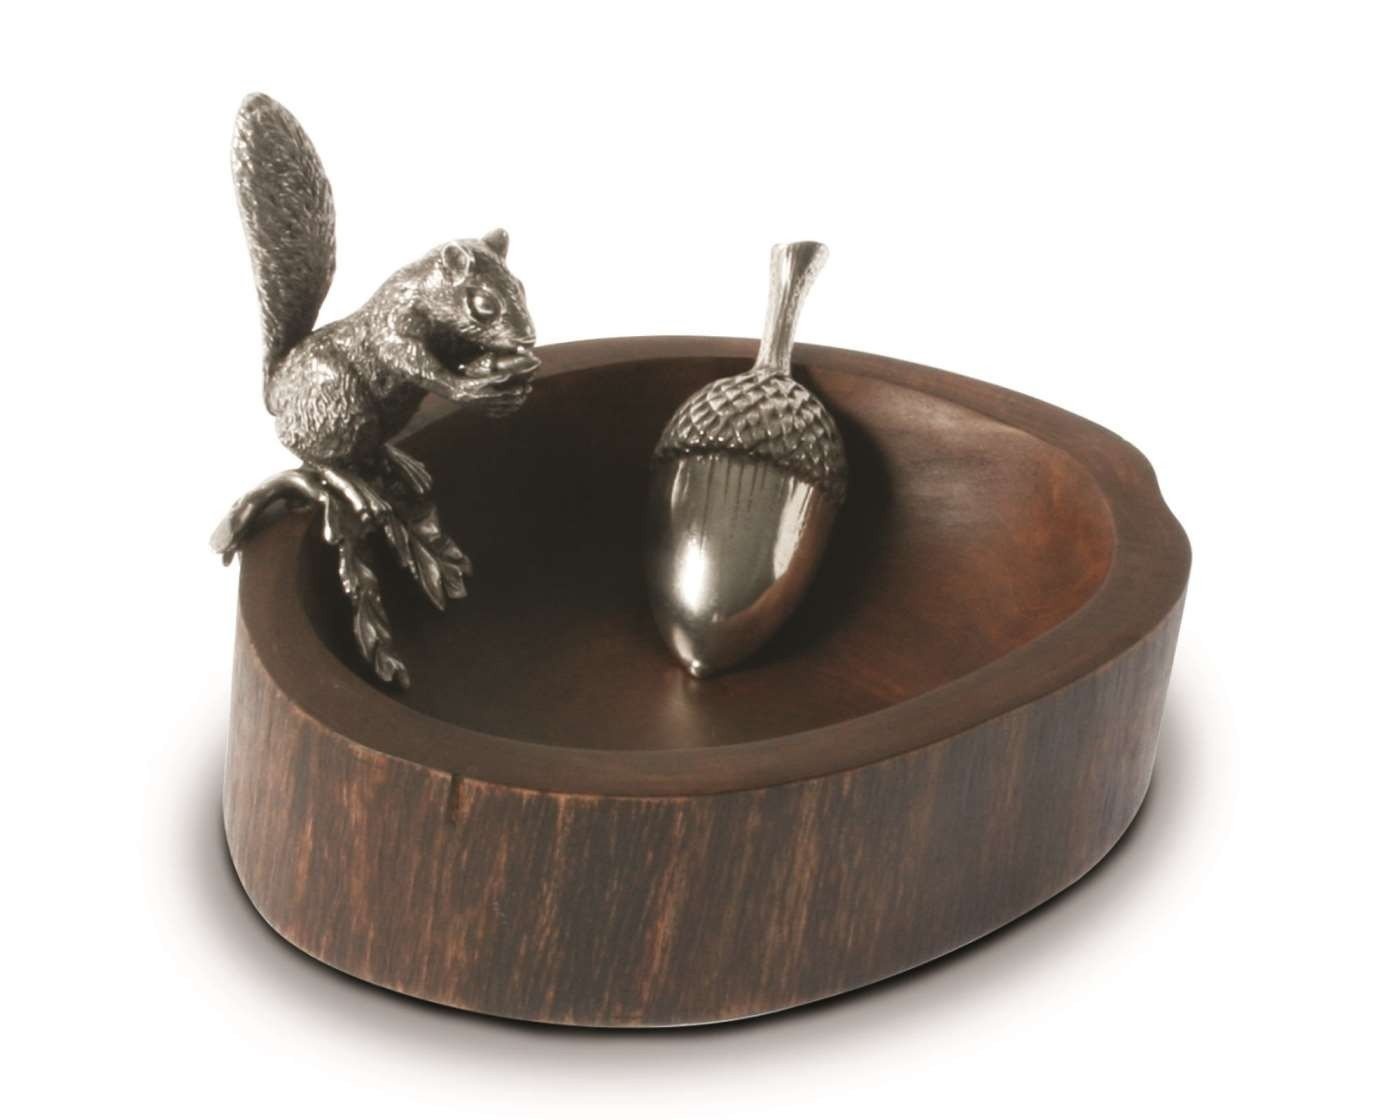 Vagabond House Nut Bowl - Squirrel Standing with Scoop